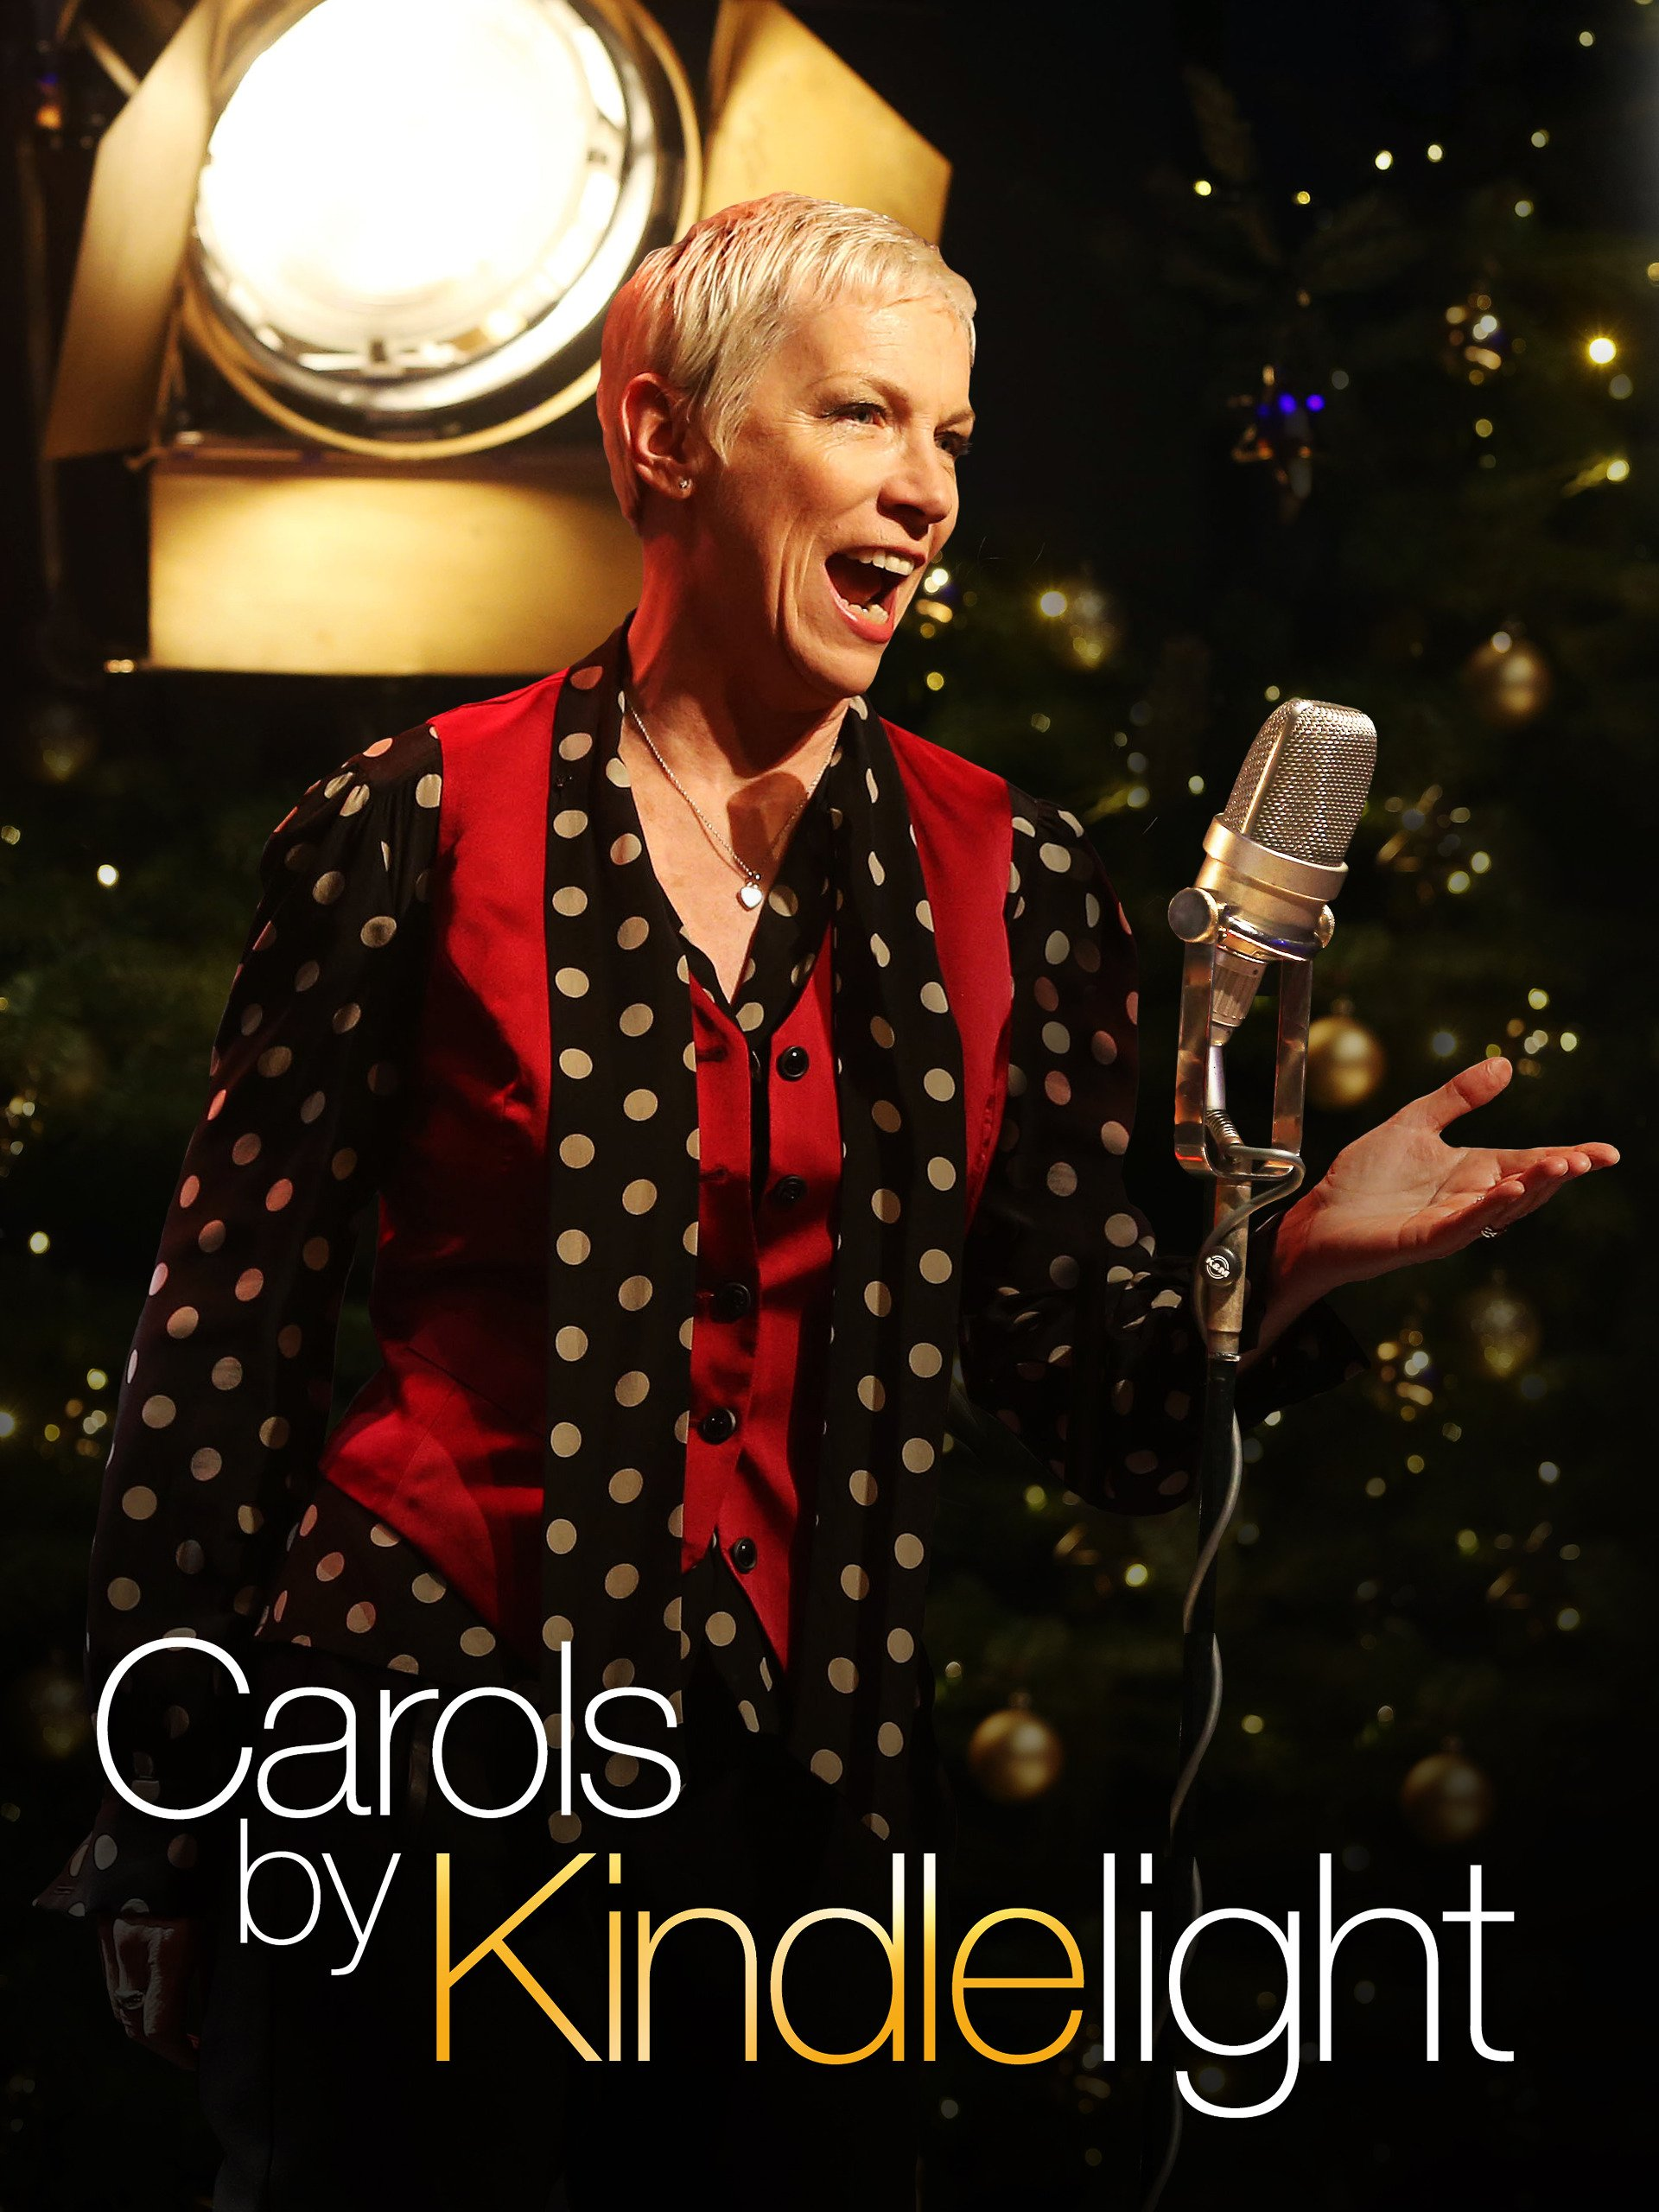 Carols by Kindlelight